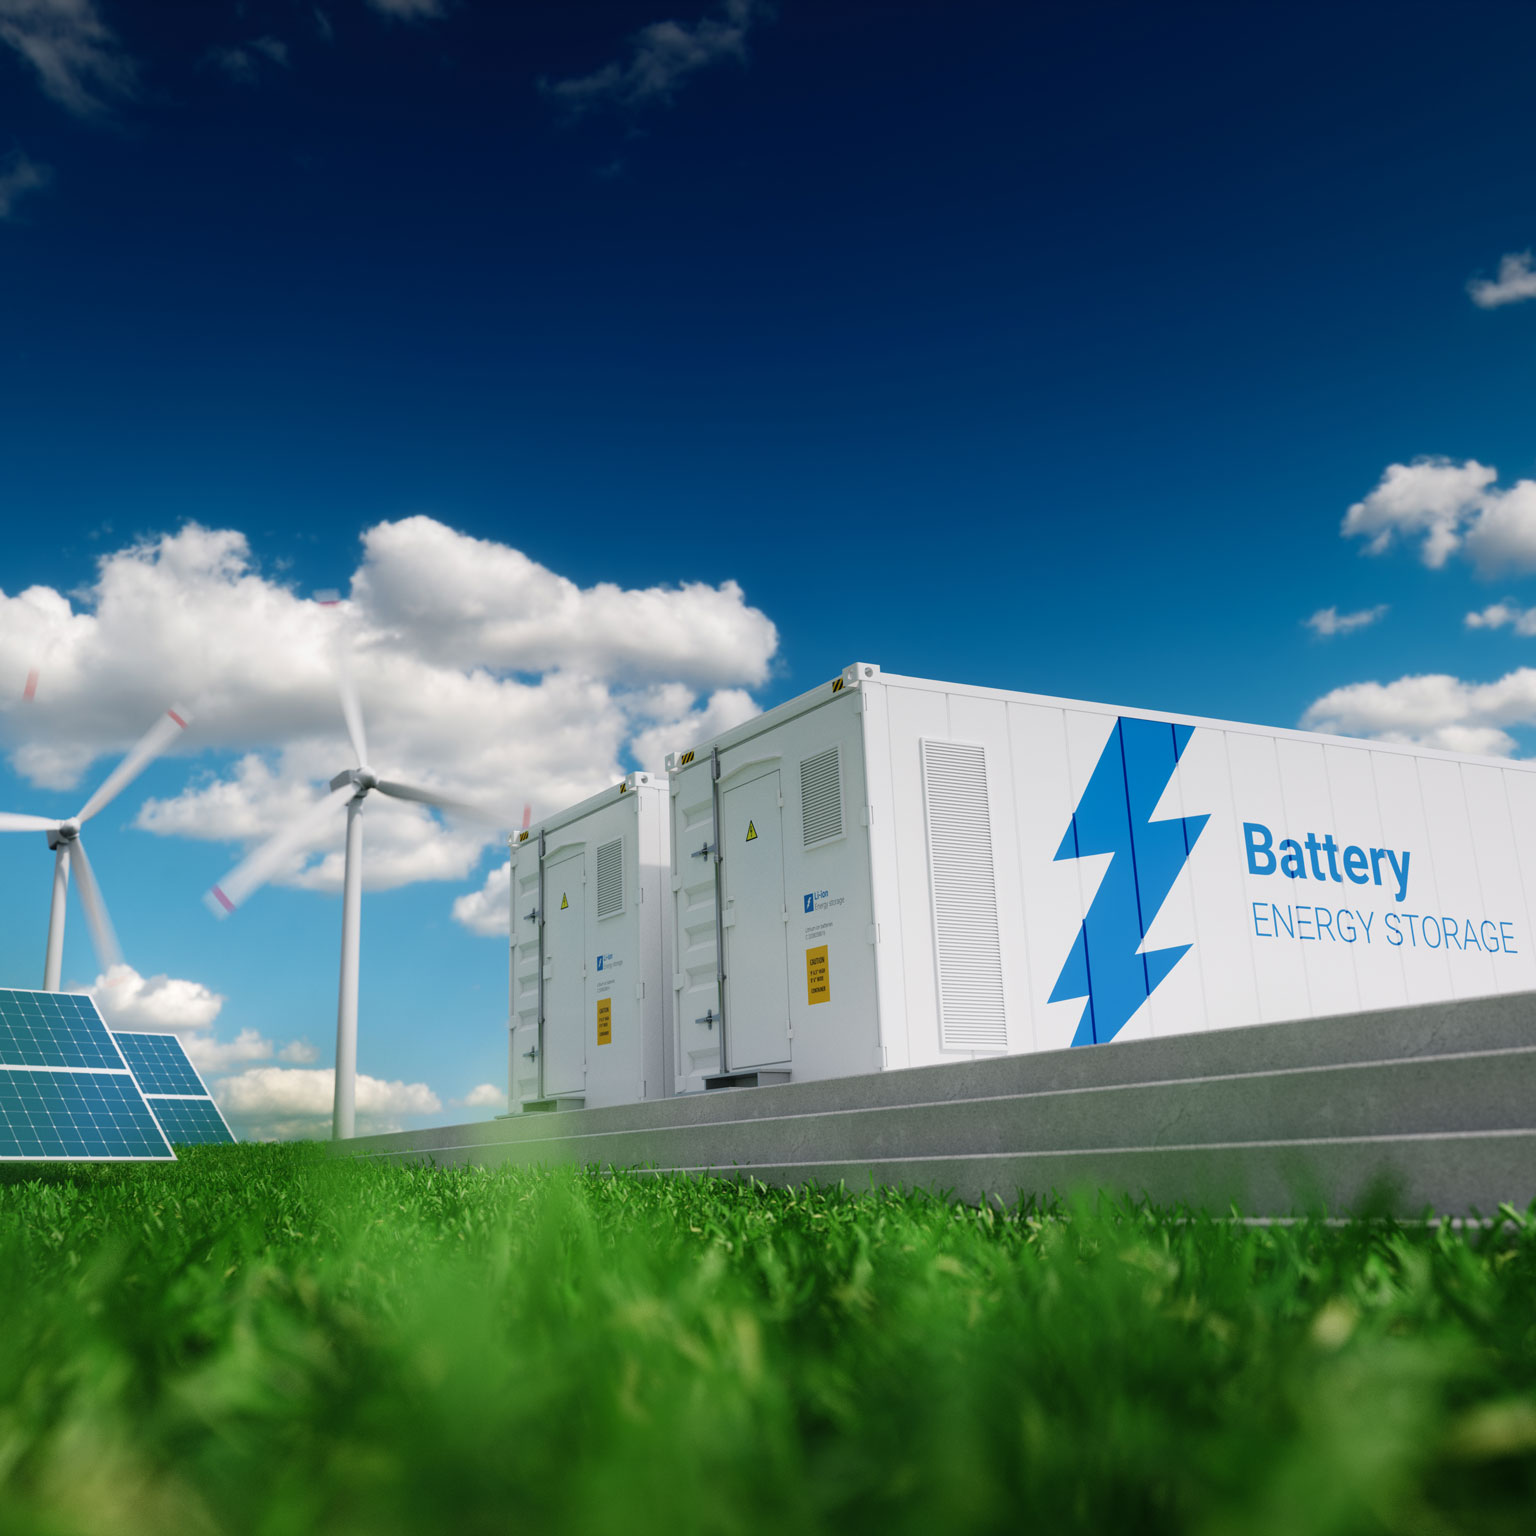 The new rules of competition in energy storage | McKinsey